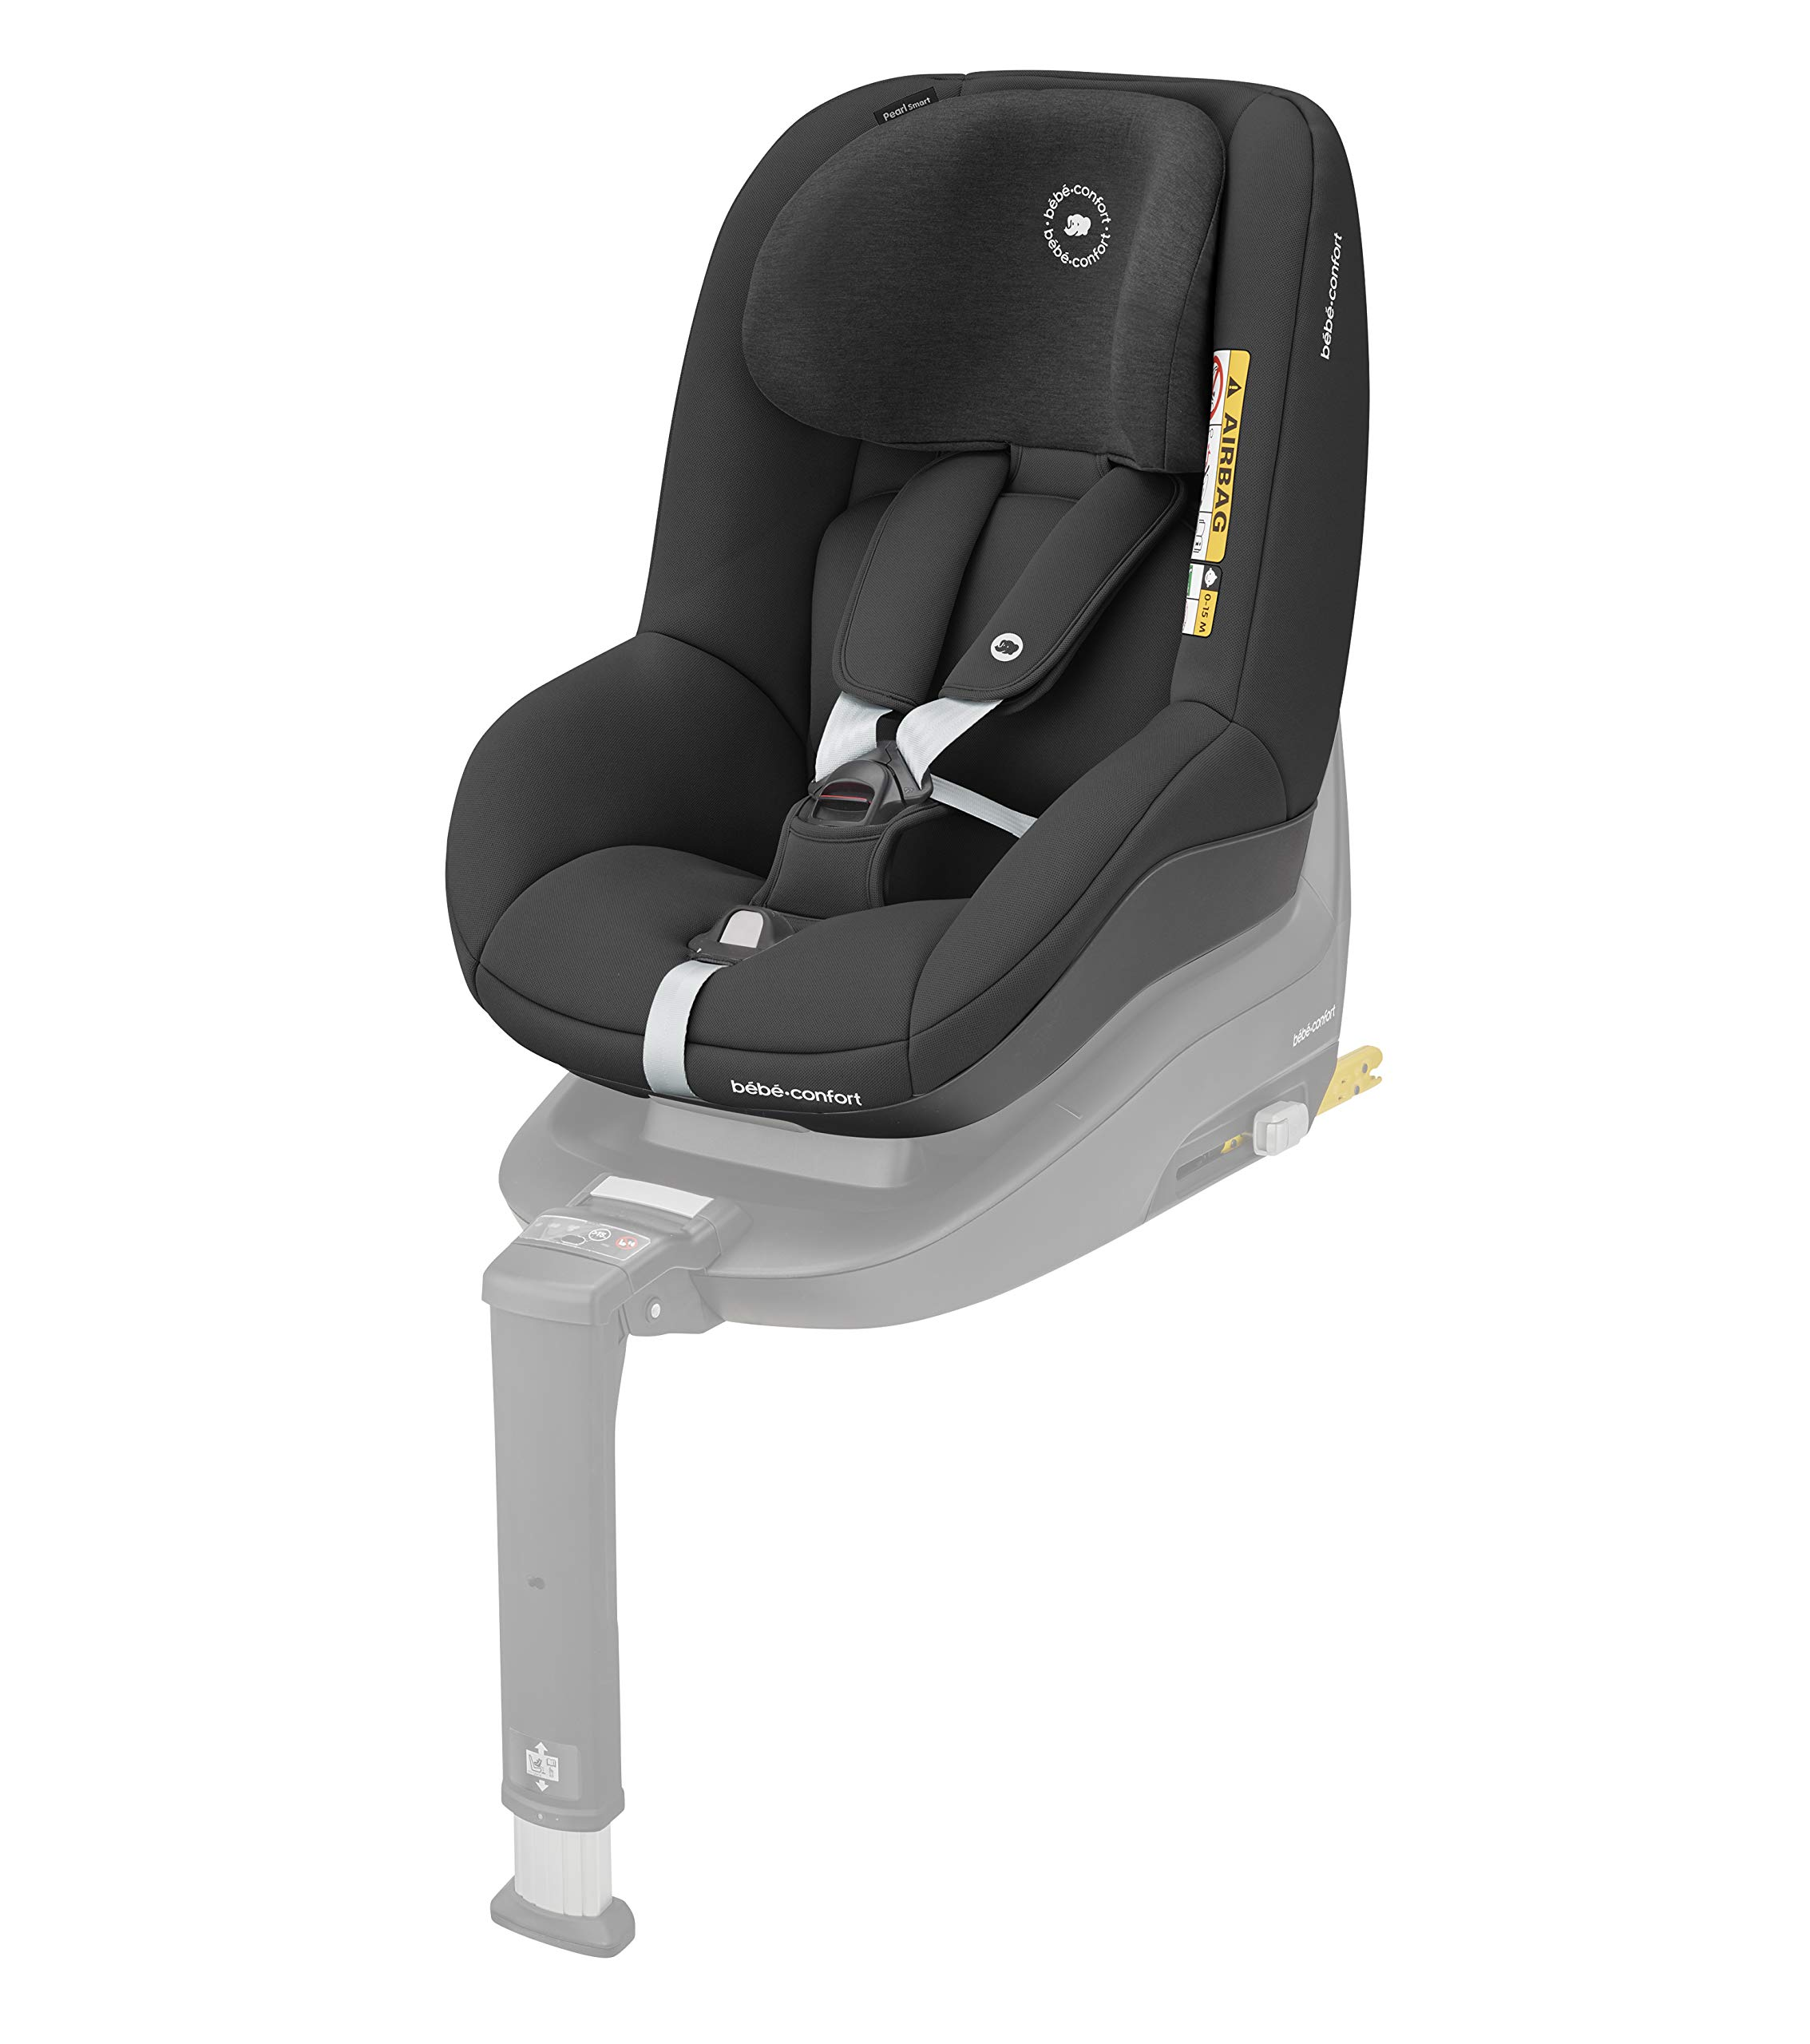 Bébé Confort Pearl Smart i Size 6.88 kg Bébé Confort Car seat 9-18 kg for children from 6 months to 4 years approx. height between 67 - 105 cm, approved i-size (ECE R129) Can be used in the opposite direction of travel up to 4 years (a backward mounted seat is 5 times safer) to protect baby's head and neck Car seat reclines into 4 positions in both directions for maximum comfort for your child. 1